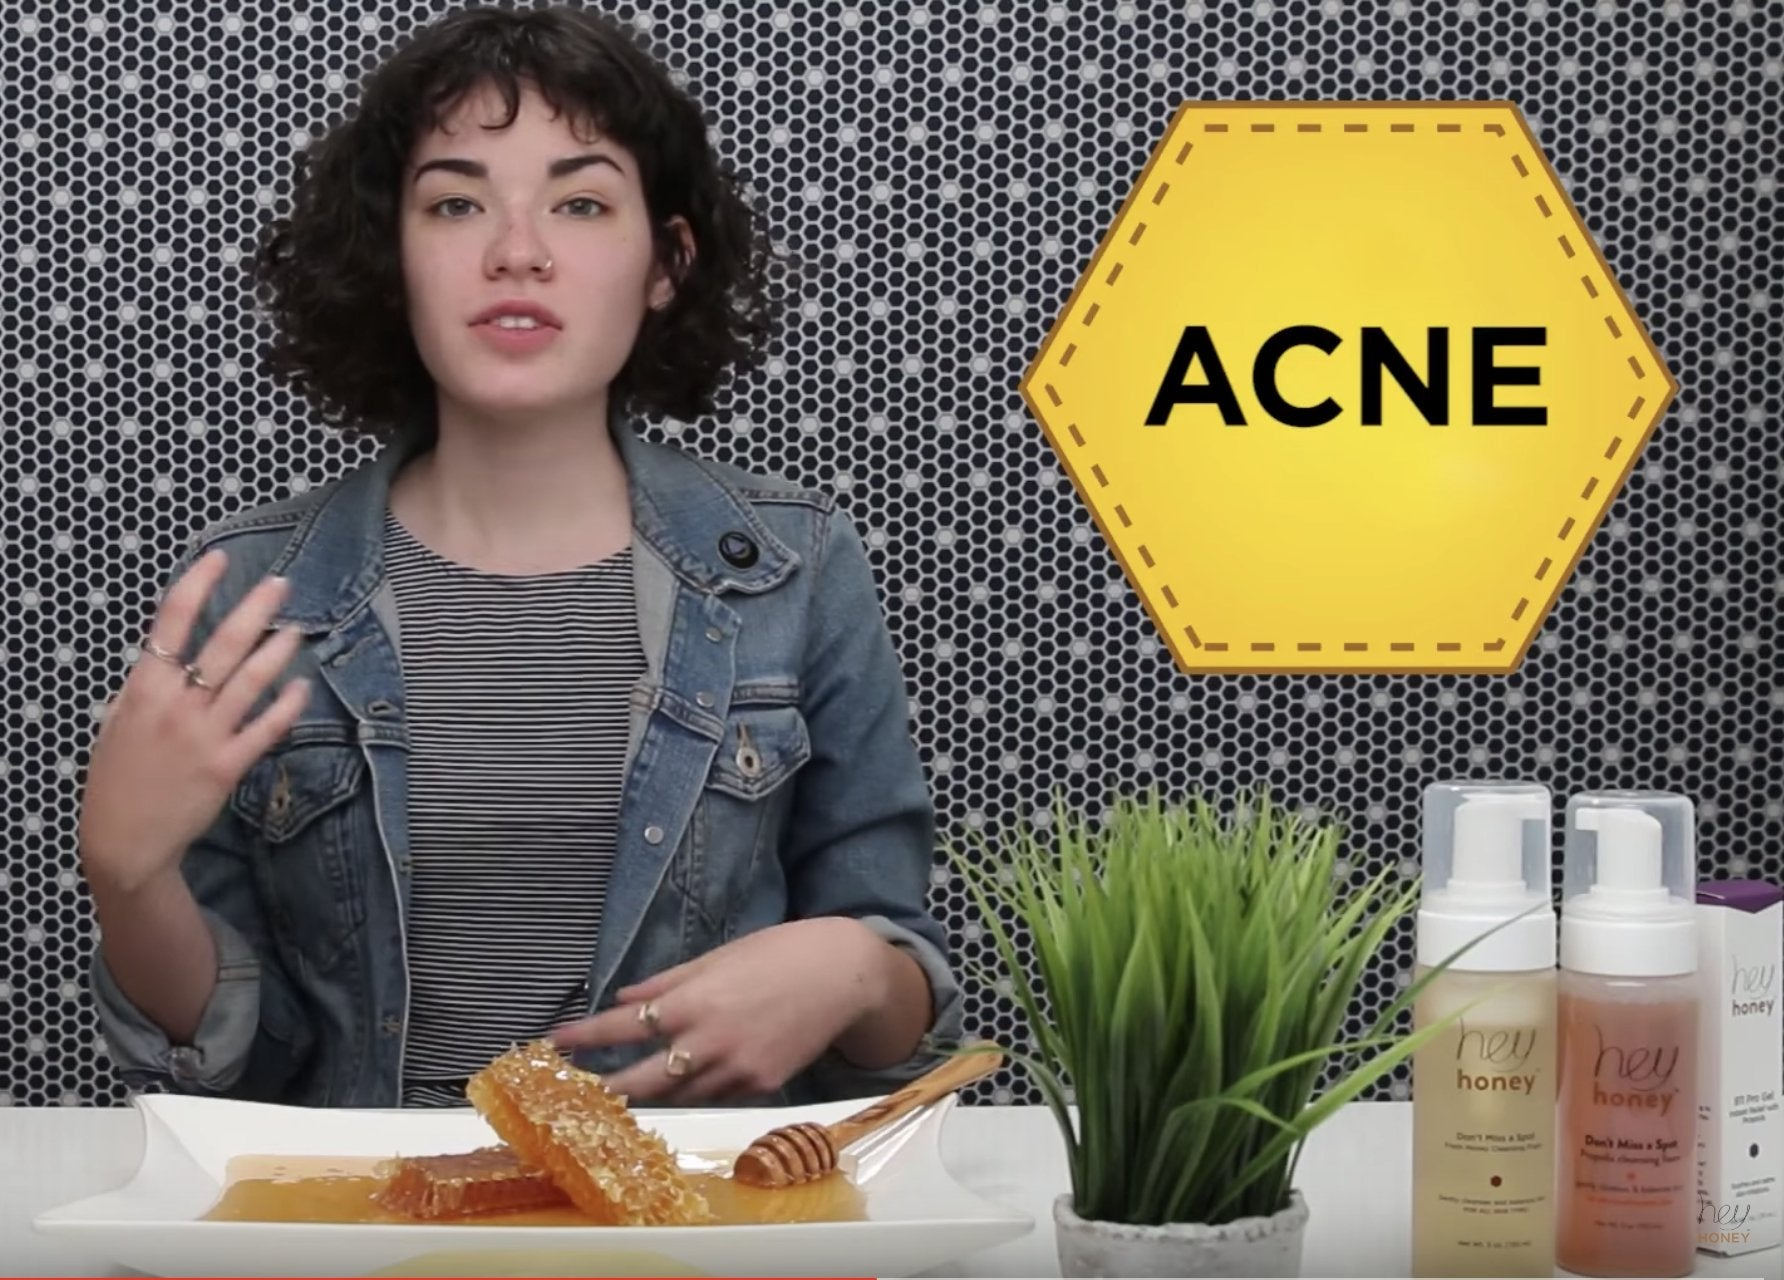 2-steps acne treatment with propolis